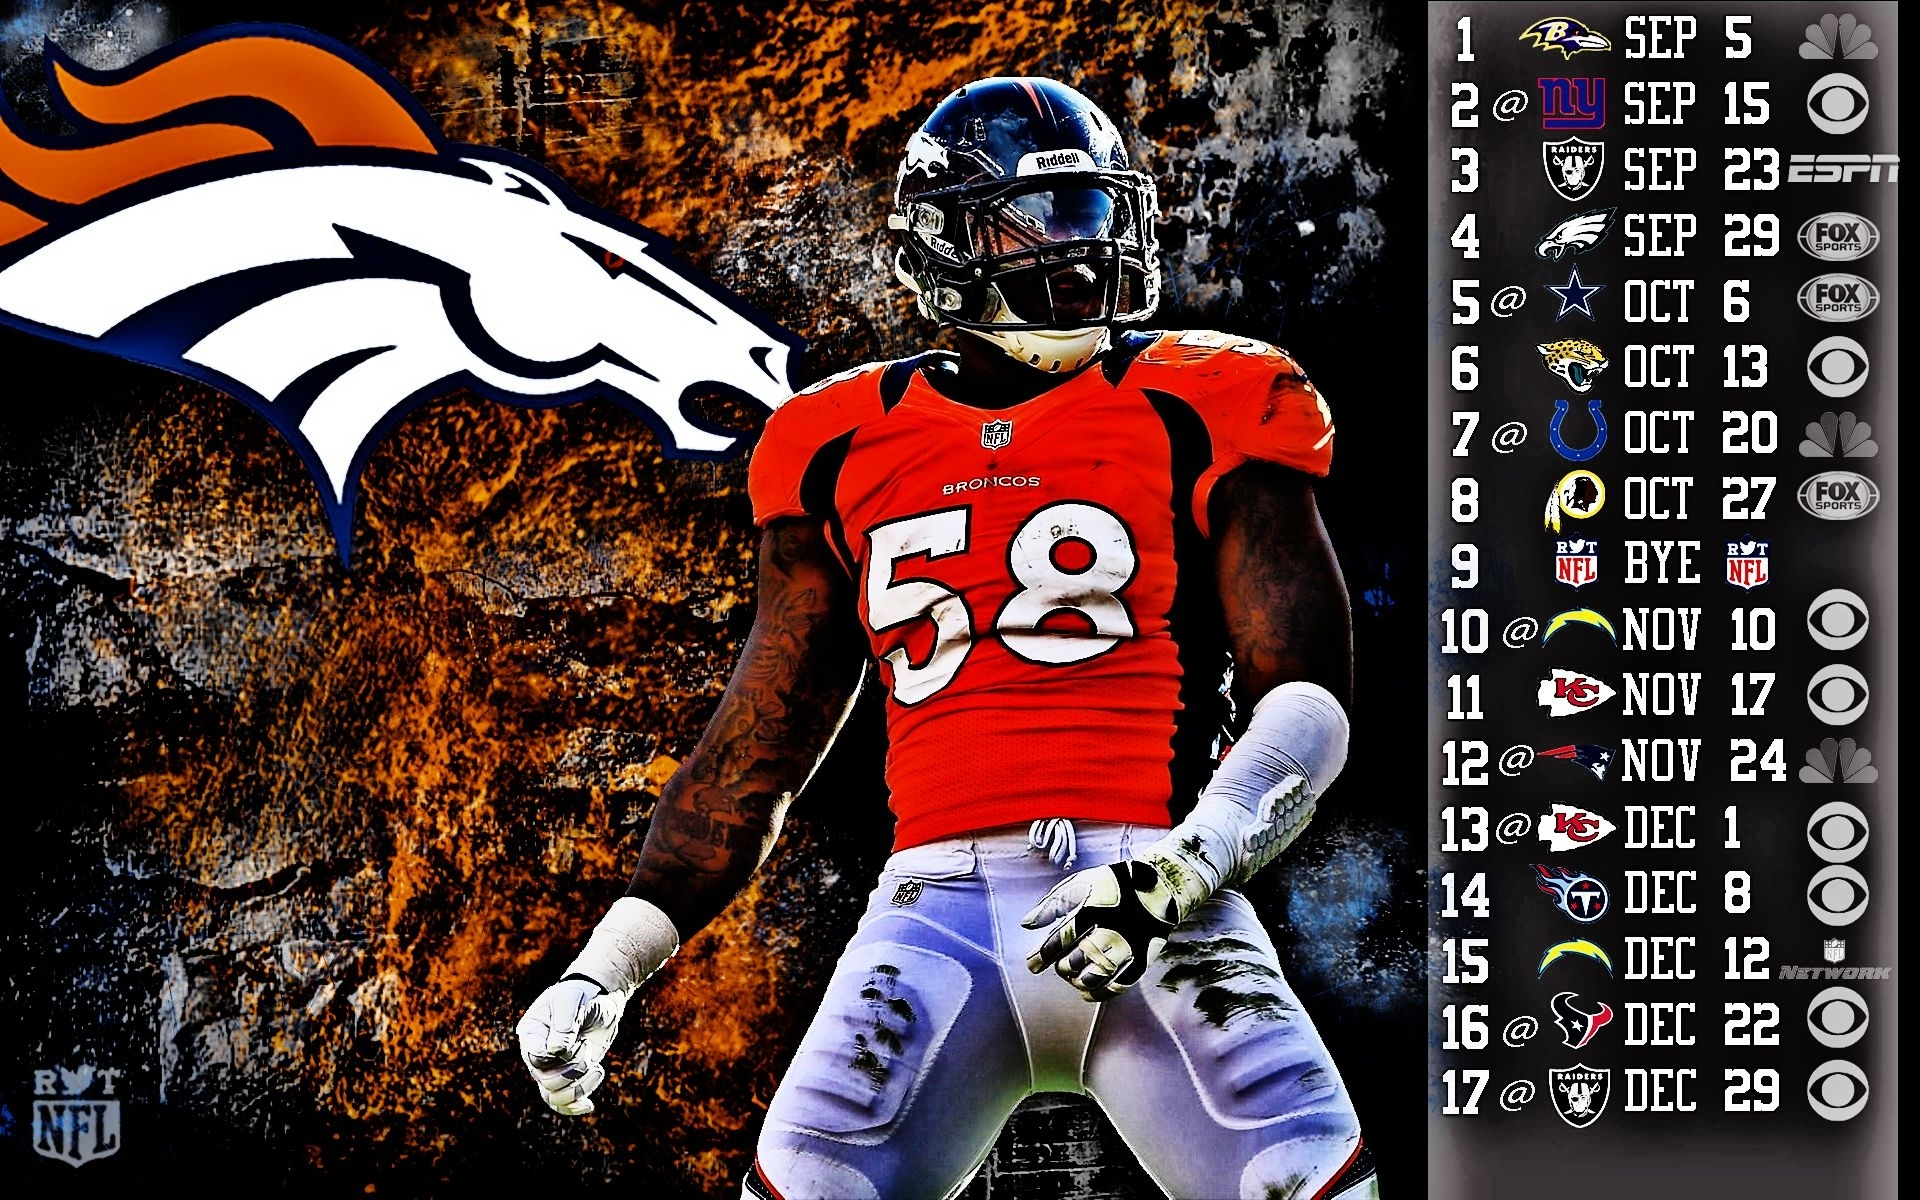 2015 denver broncos wallpaper - wallpapersafari | all wallpapers